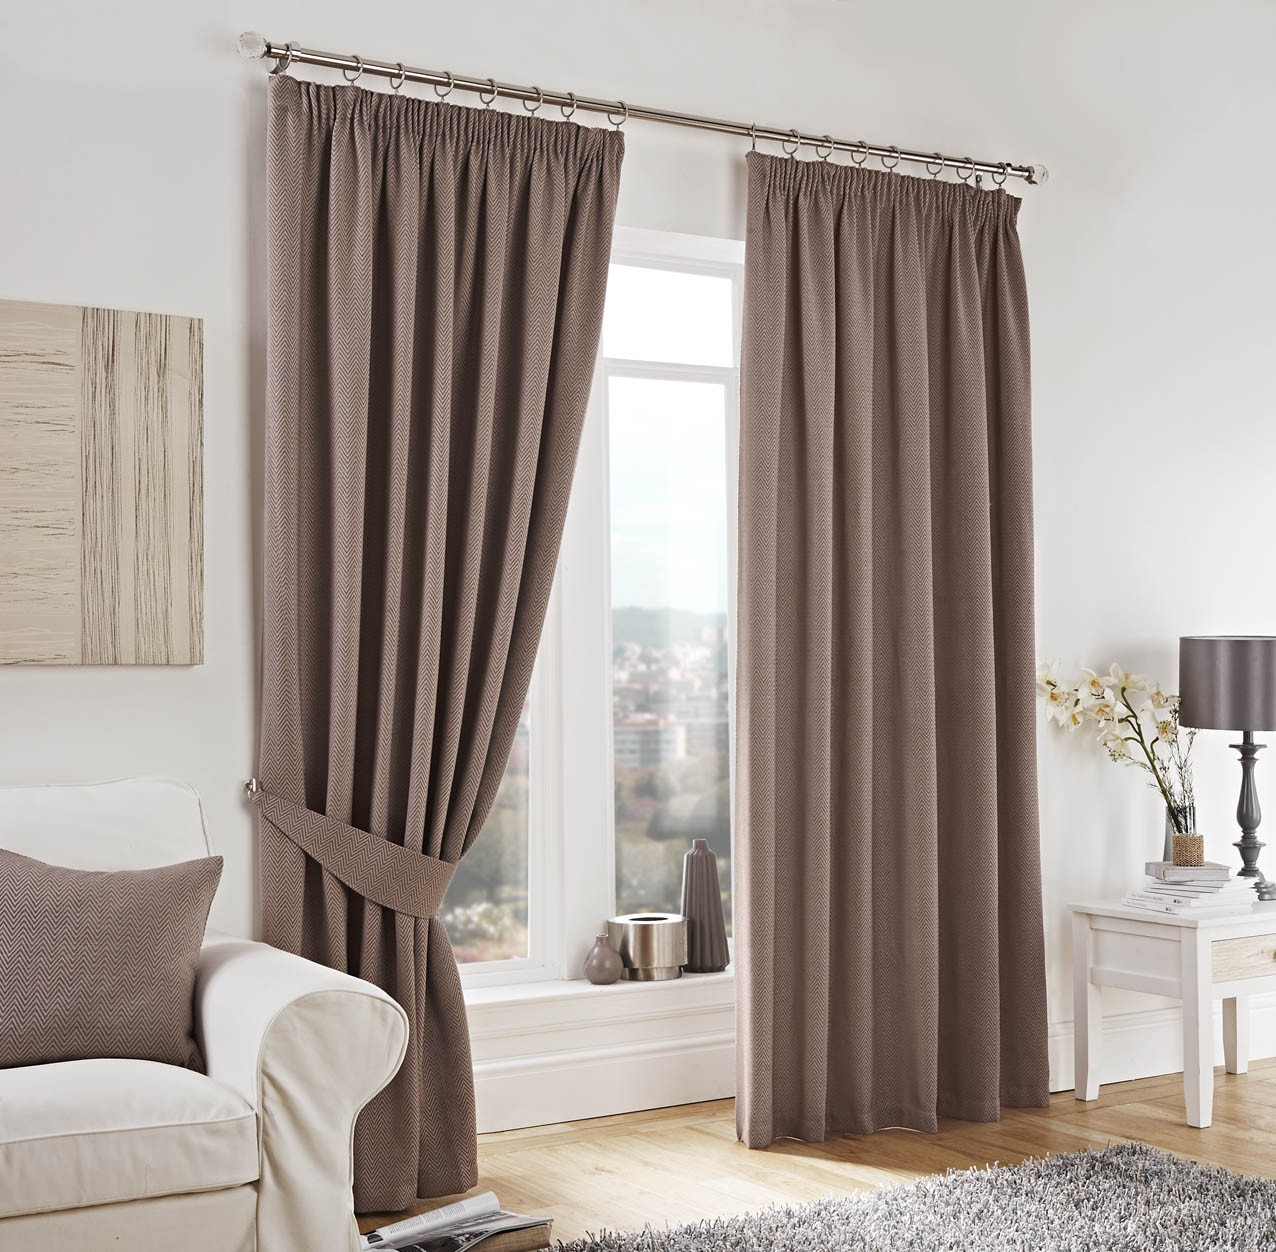 Choosing The Right Curtain Fabric